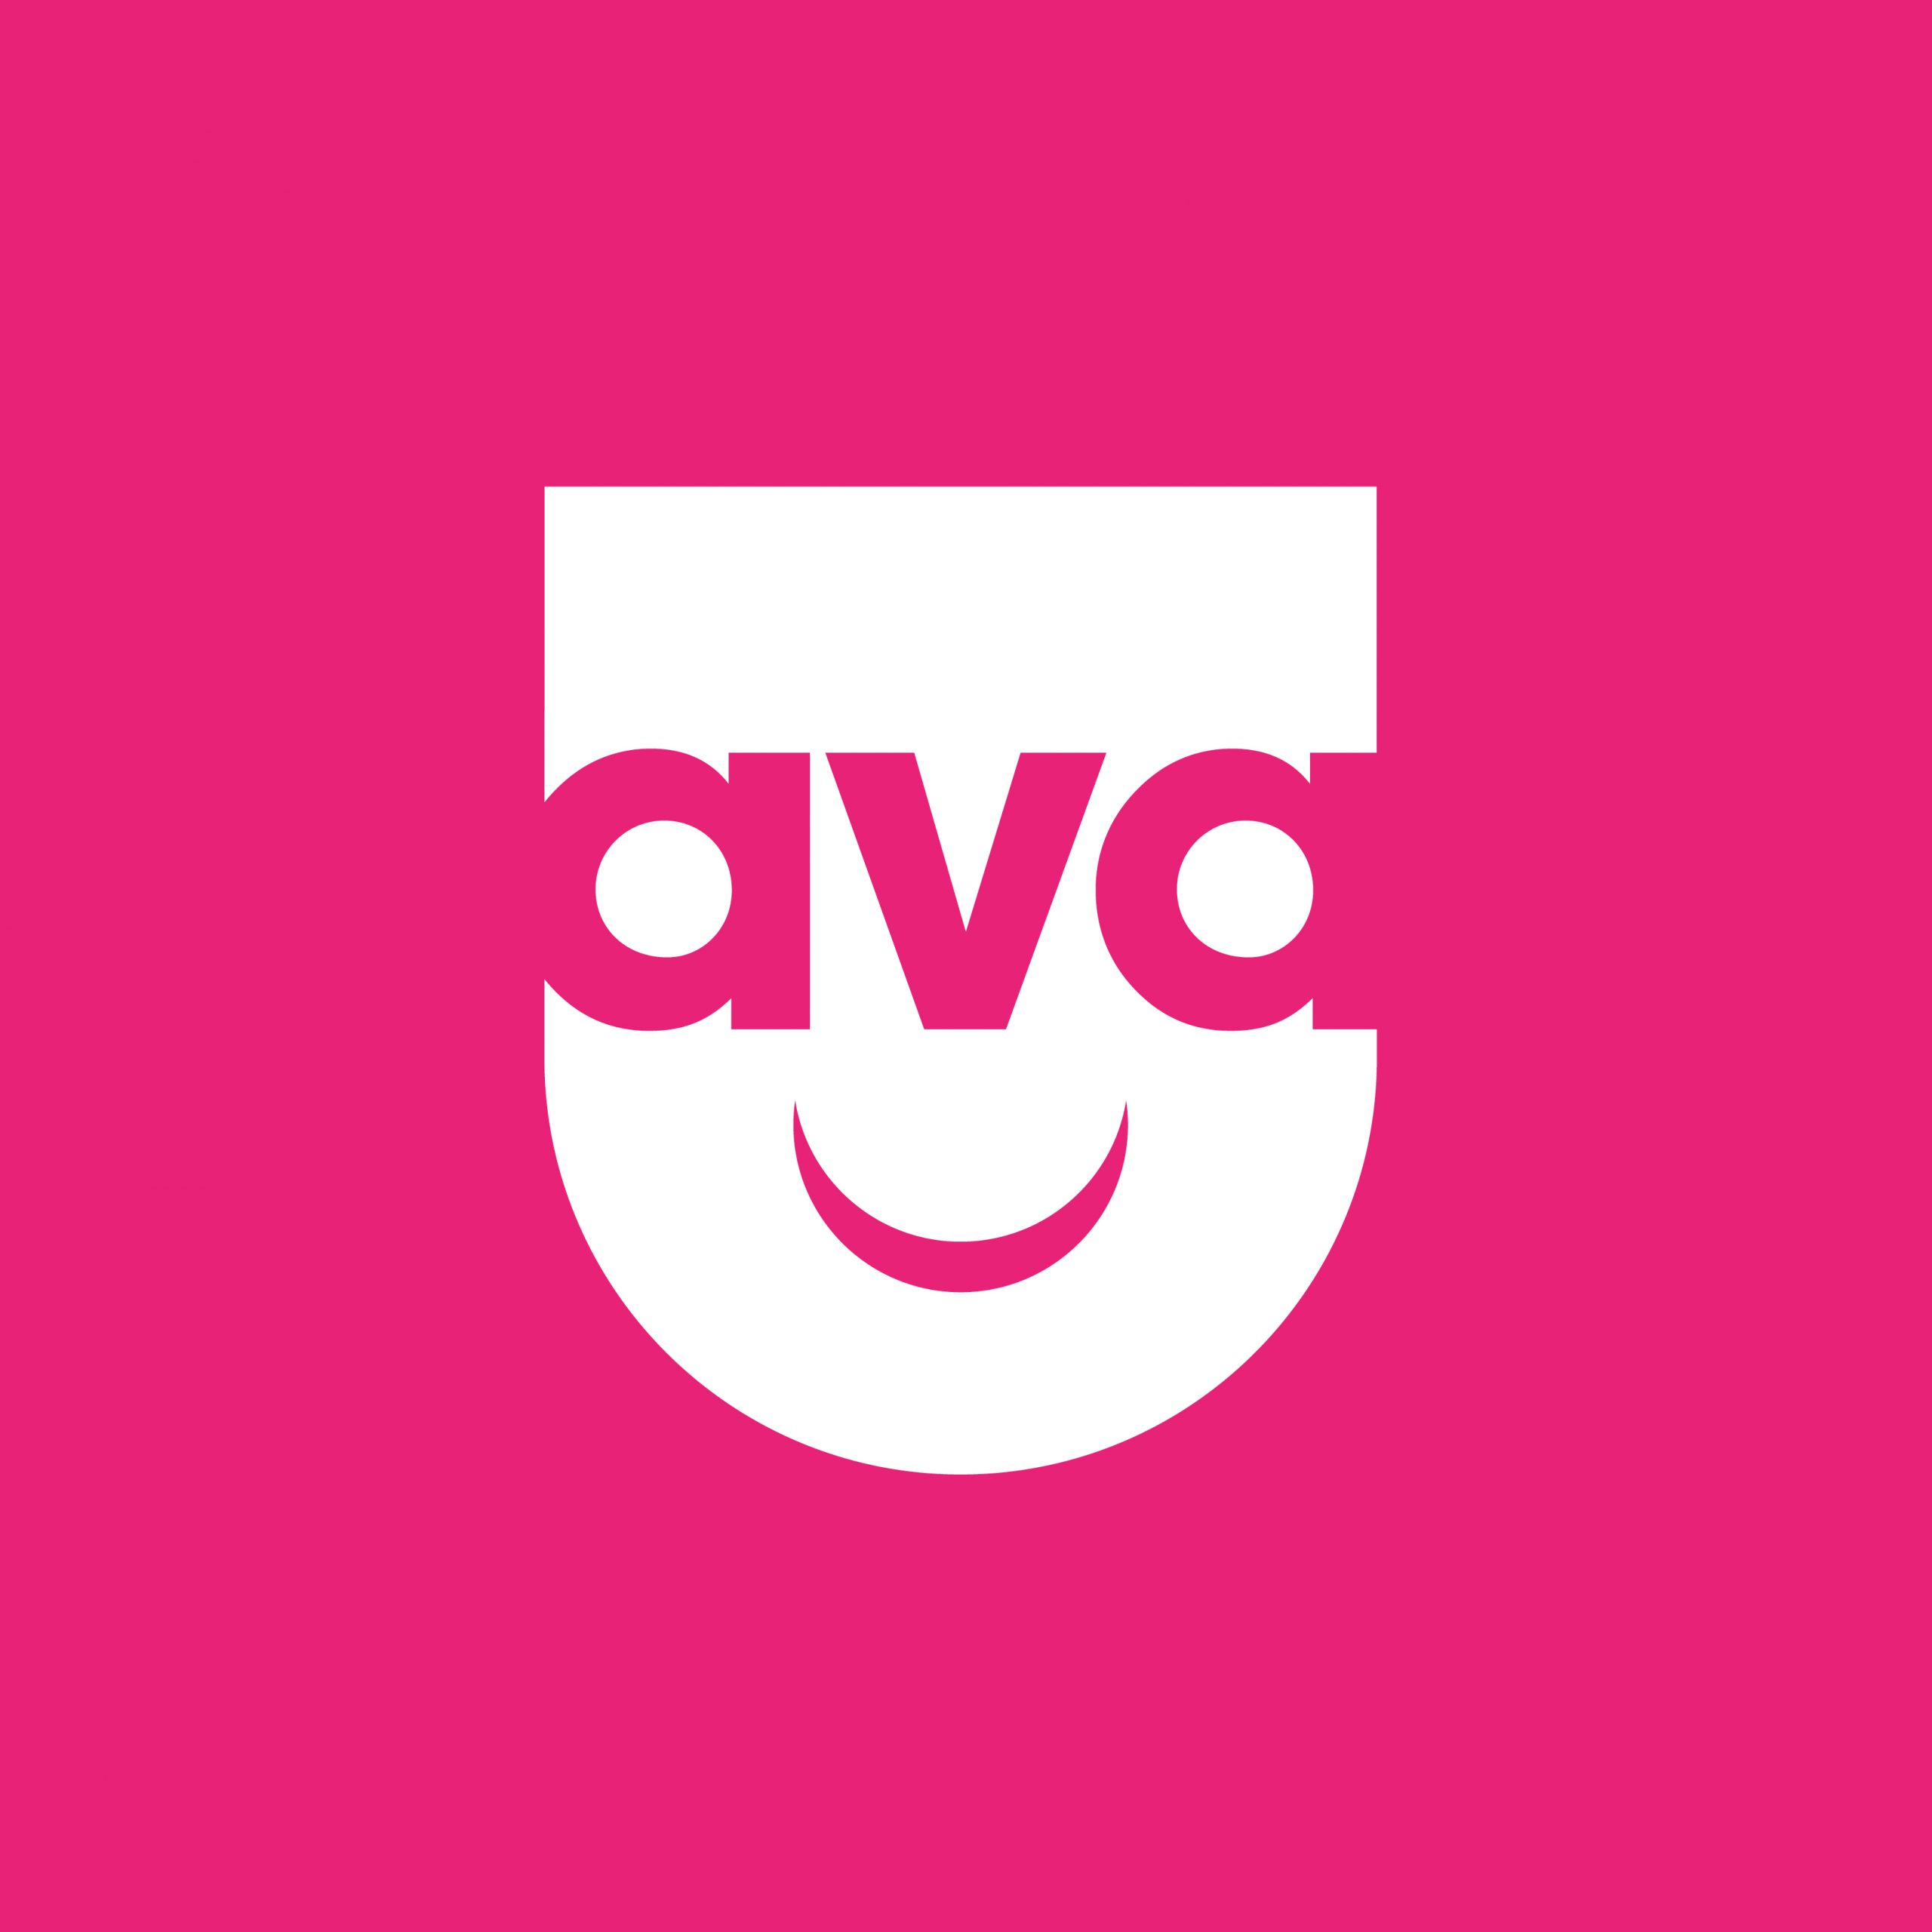 """Naming and branding for an AI product line. AVA stands for """"Automated Virtual Assistant""""."""